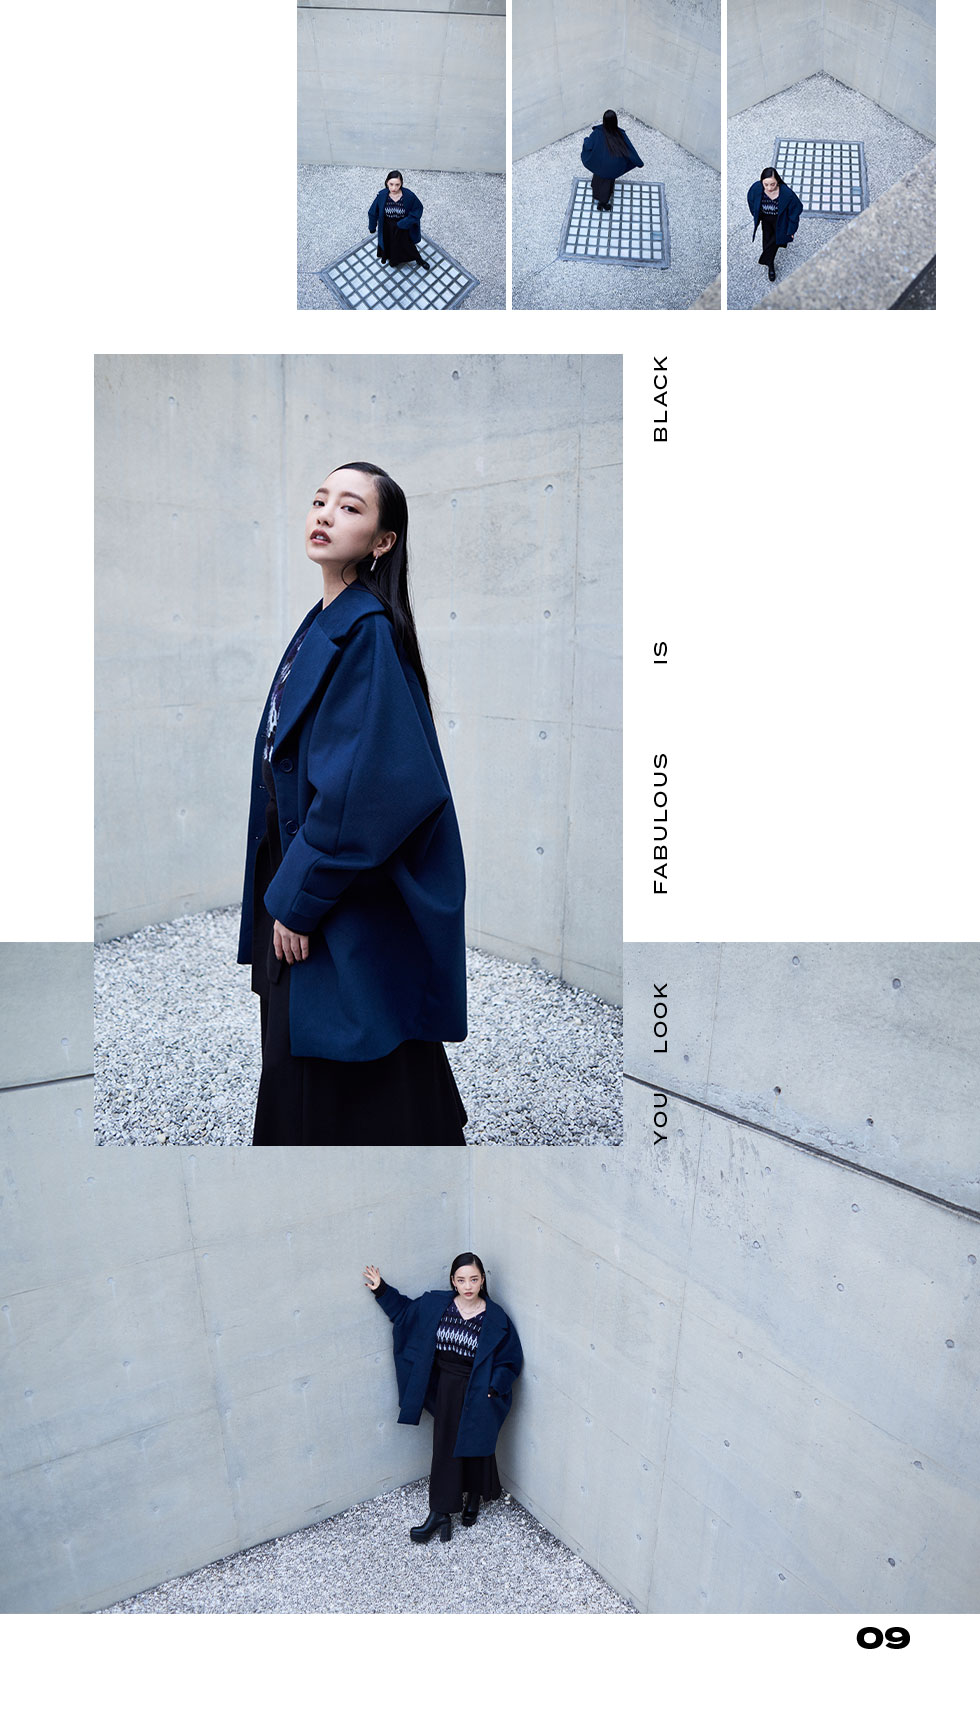 2019 WINTER COLLECTION featuring HARA Image No.10